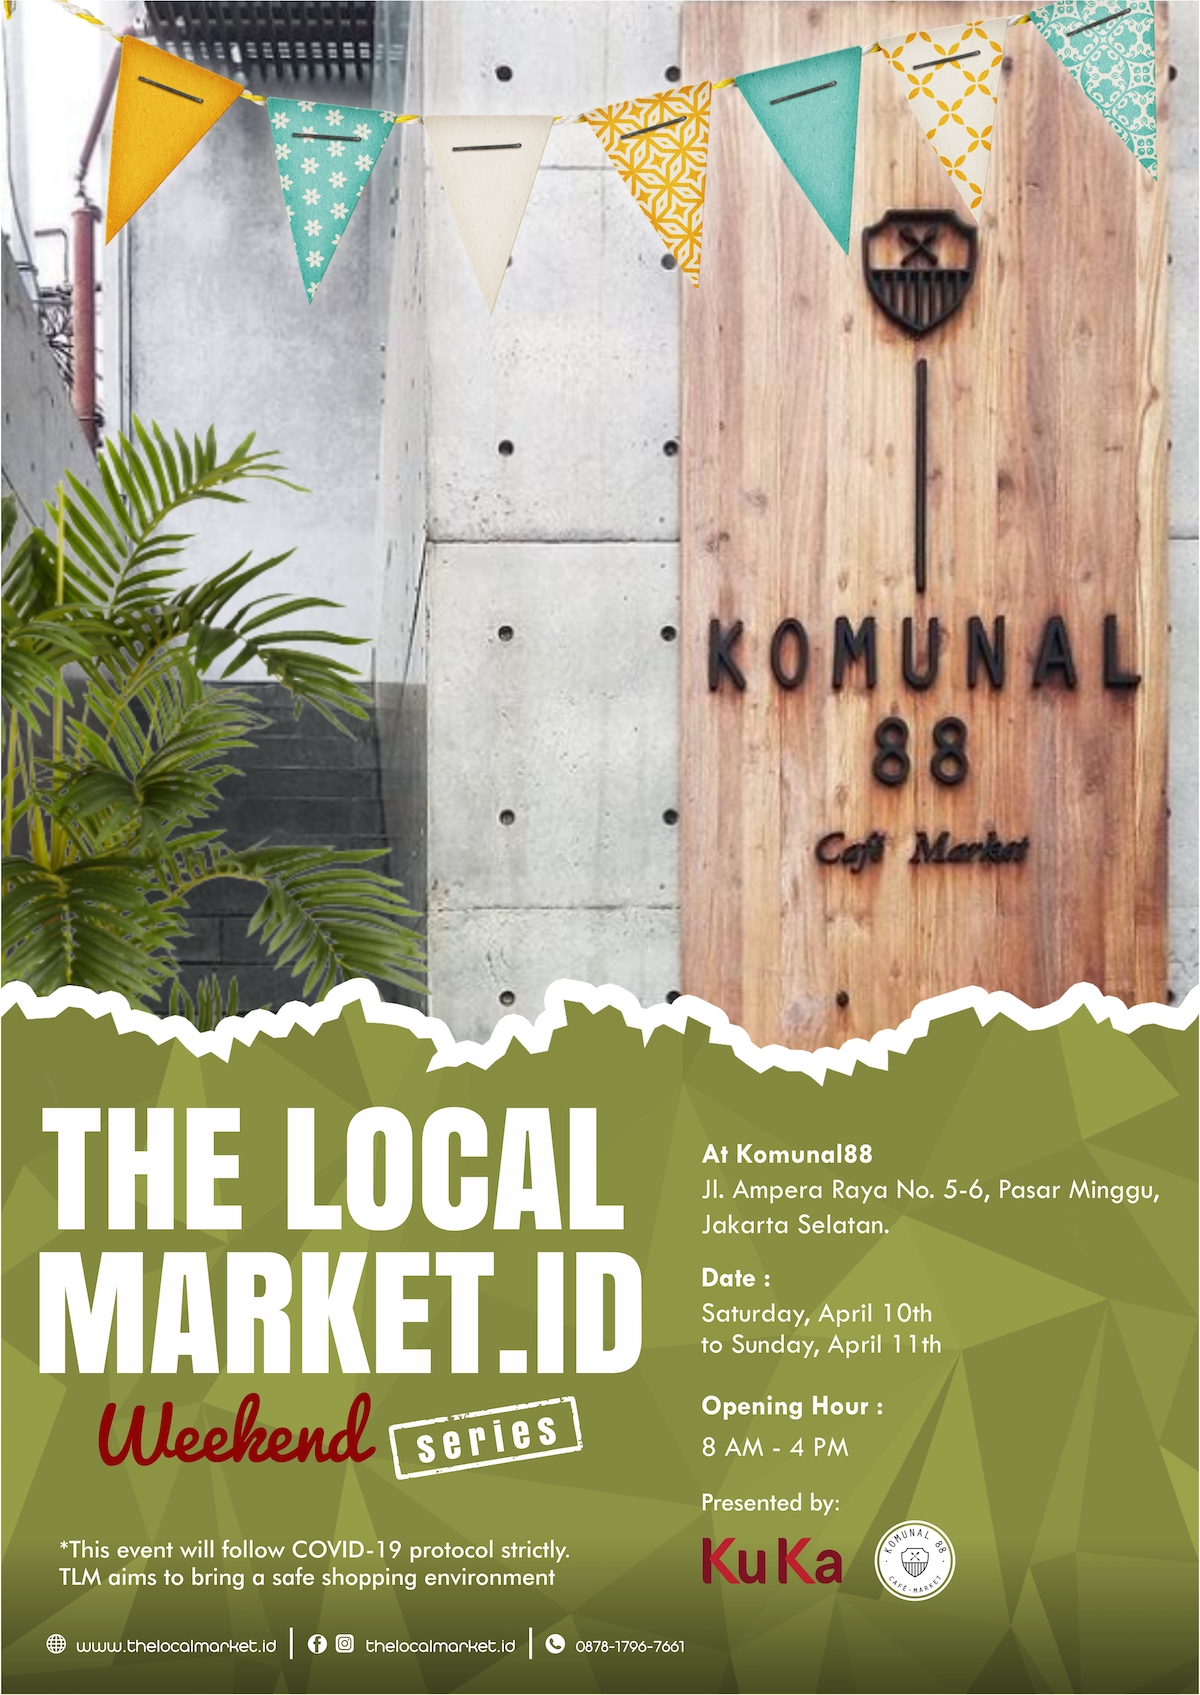 The Local Market - Weekend Series (April 2021)